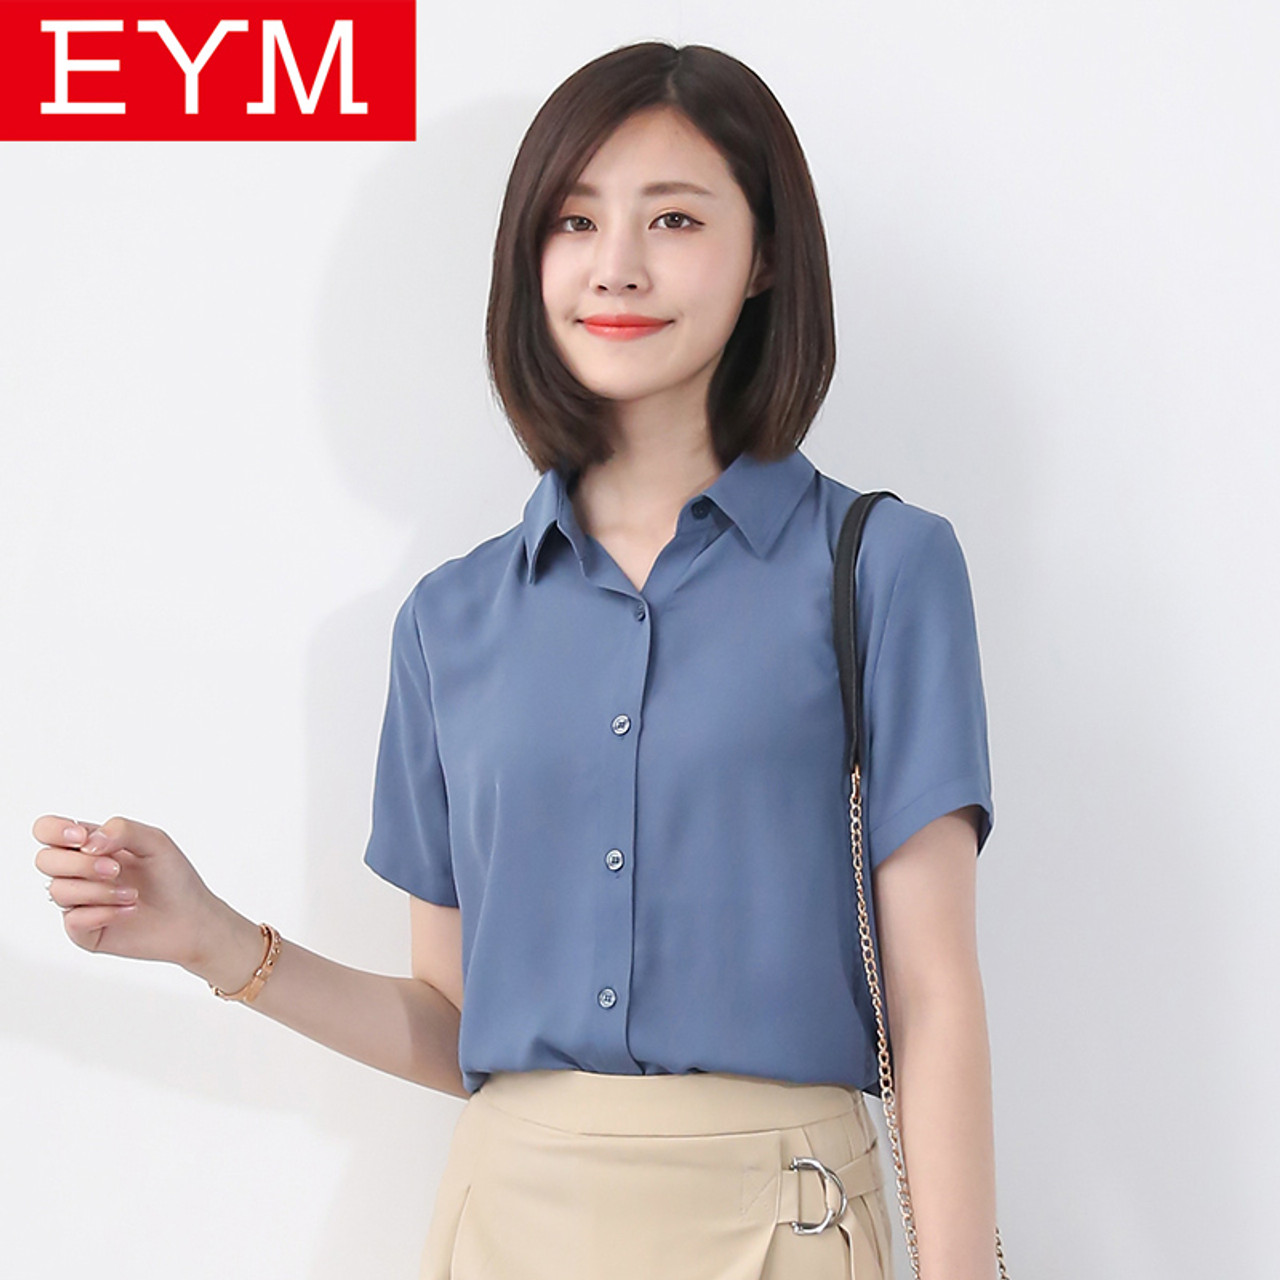 4473d70fc1 EYM Brand Summer Blouses Women 2018 New Women Shirt Fashion Casual Solid  Color Short Sleeve Chiffon ...